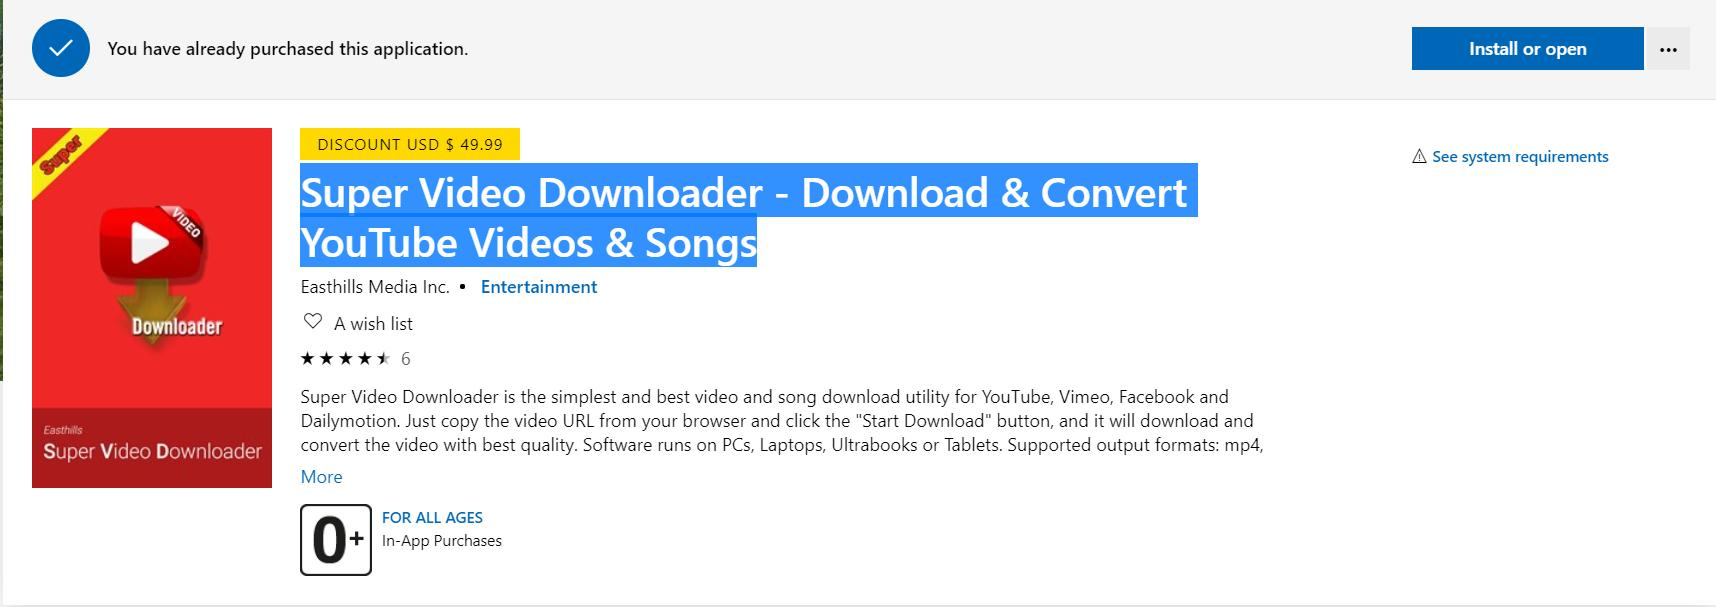 Super Video Downloader - Download & Convert YouTube Videos & Songs